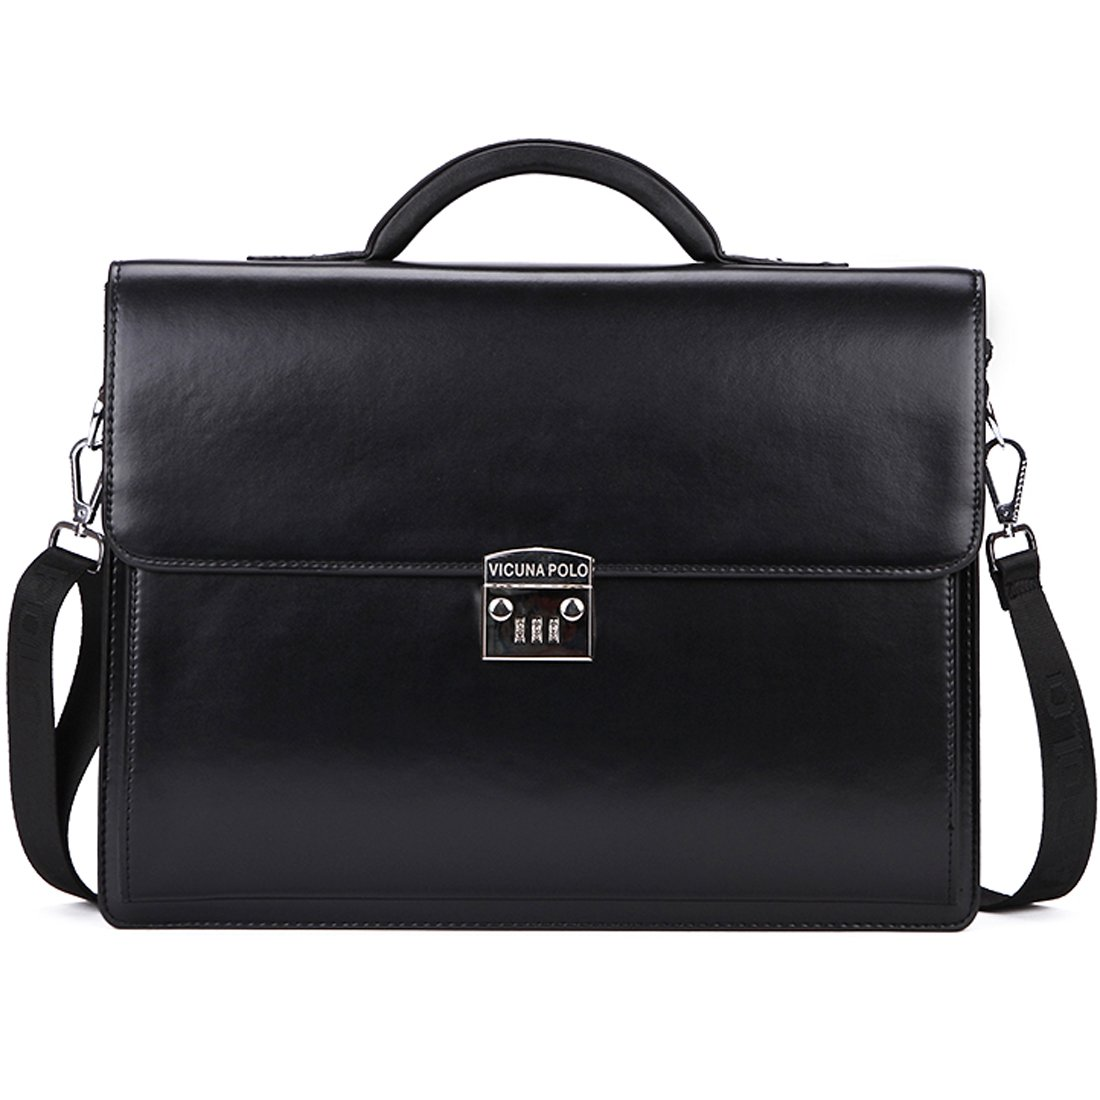 VICUNA POLO Briefcase For Men Handbag Business Man Bag Laptop Bag With Code-Lock (black)